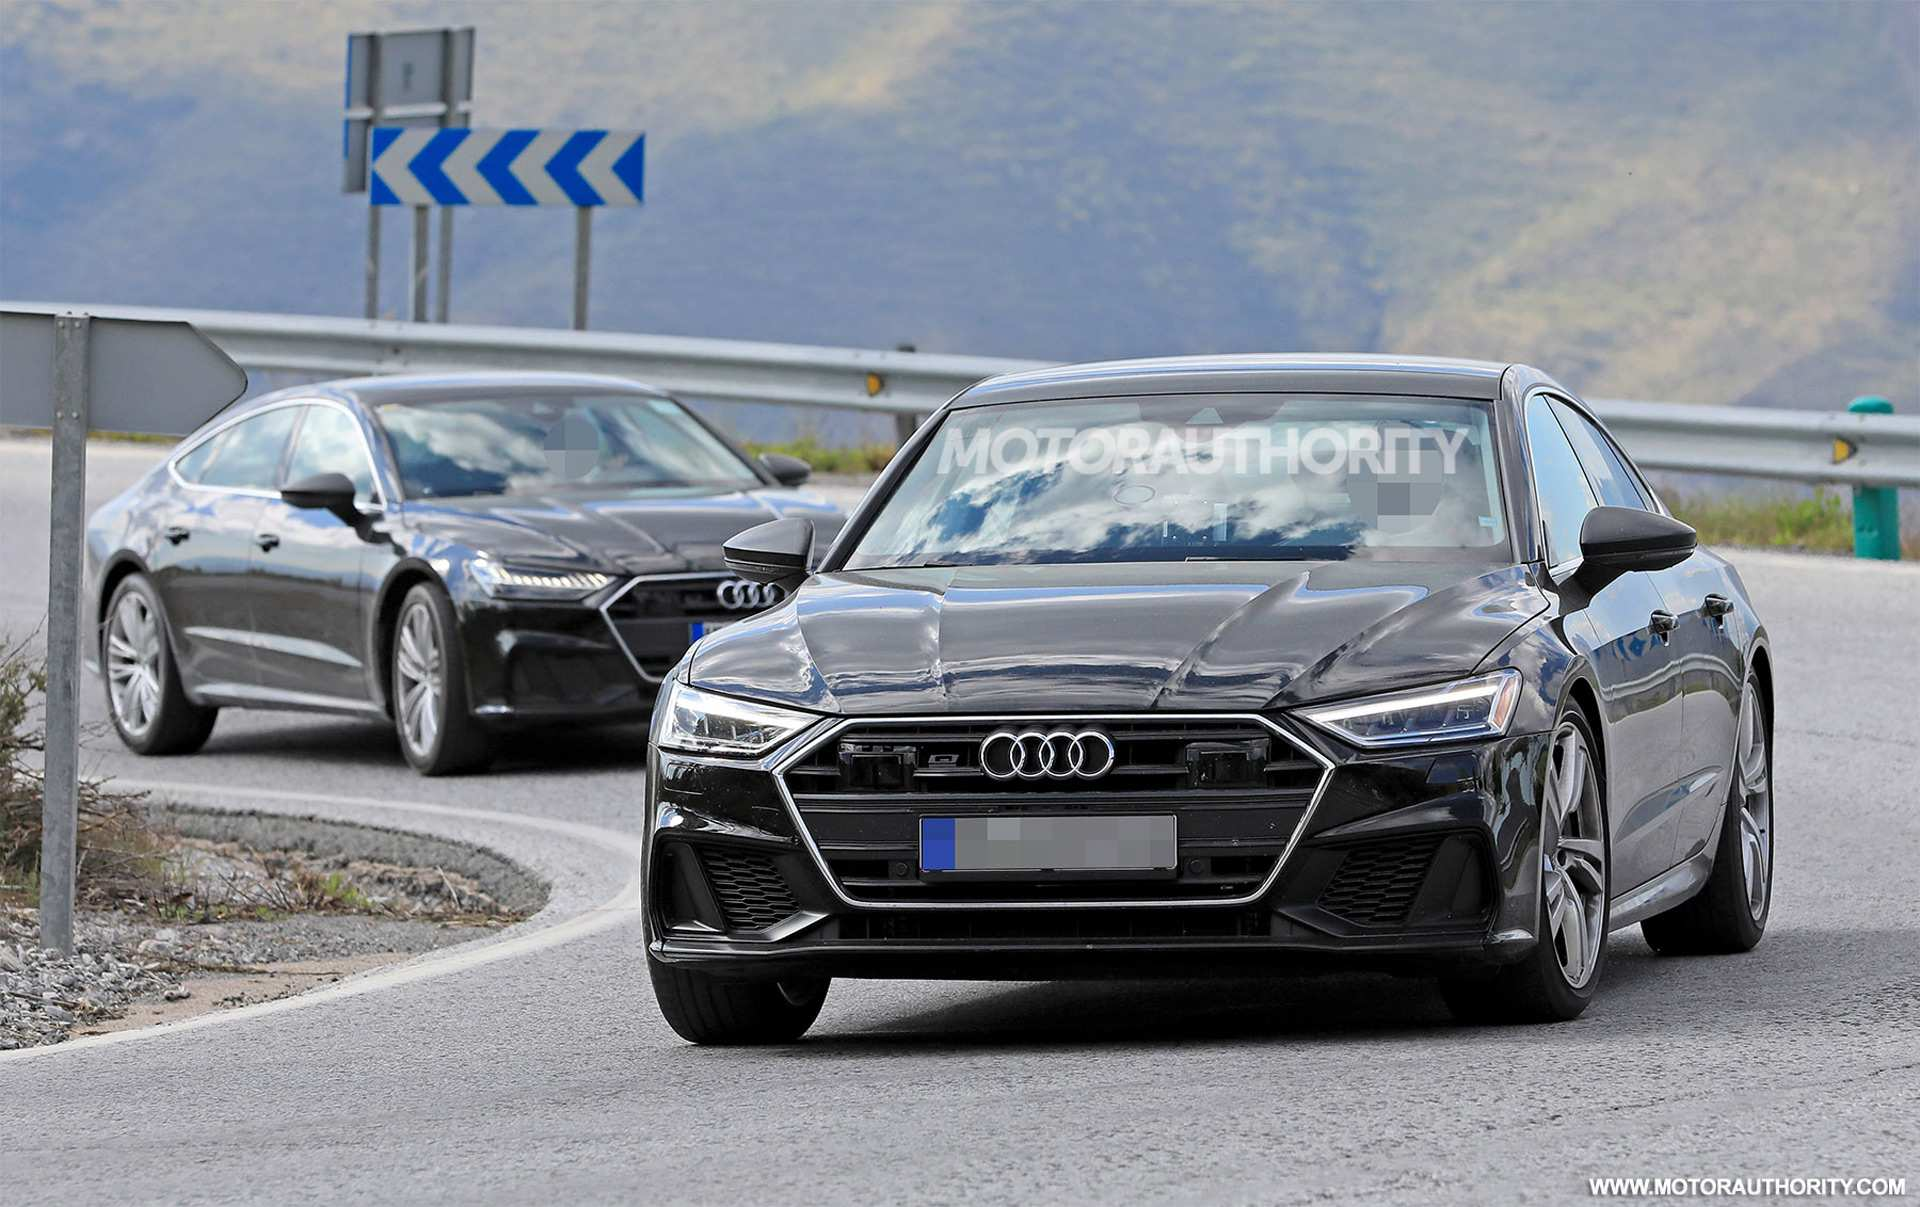 74 Gallery of 2019 Audi A7 Release Date Photos by 2019 Audi A7 Release Date